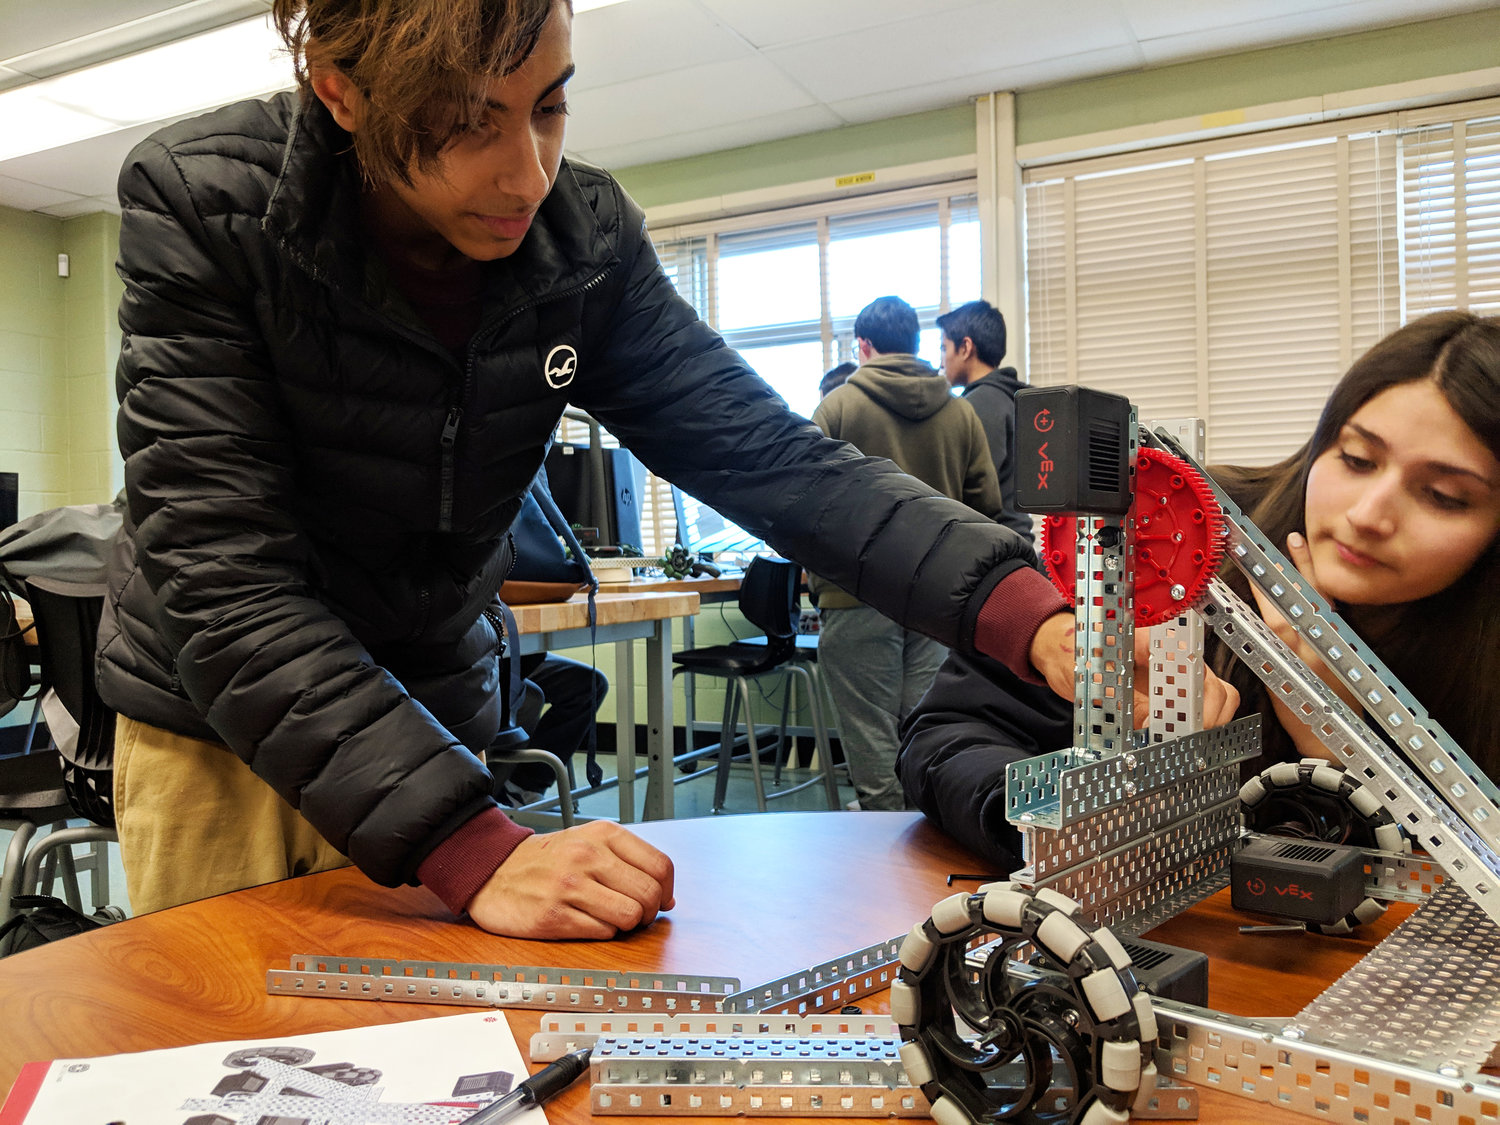 Sophomore Connor Gibson tinkered with his group's second catapult-robot while his teammate Missel Khen looked on.